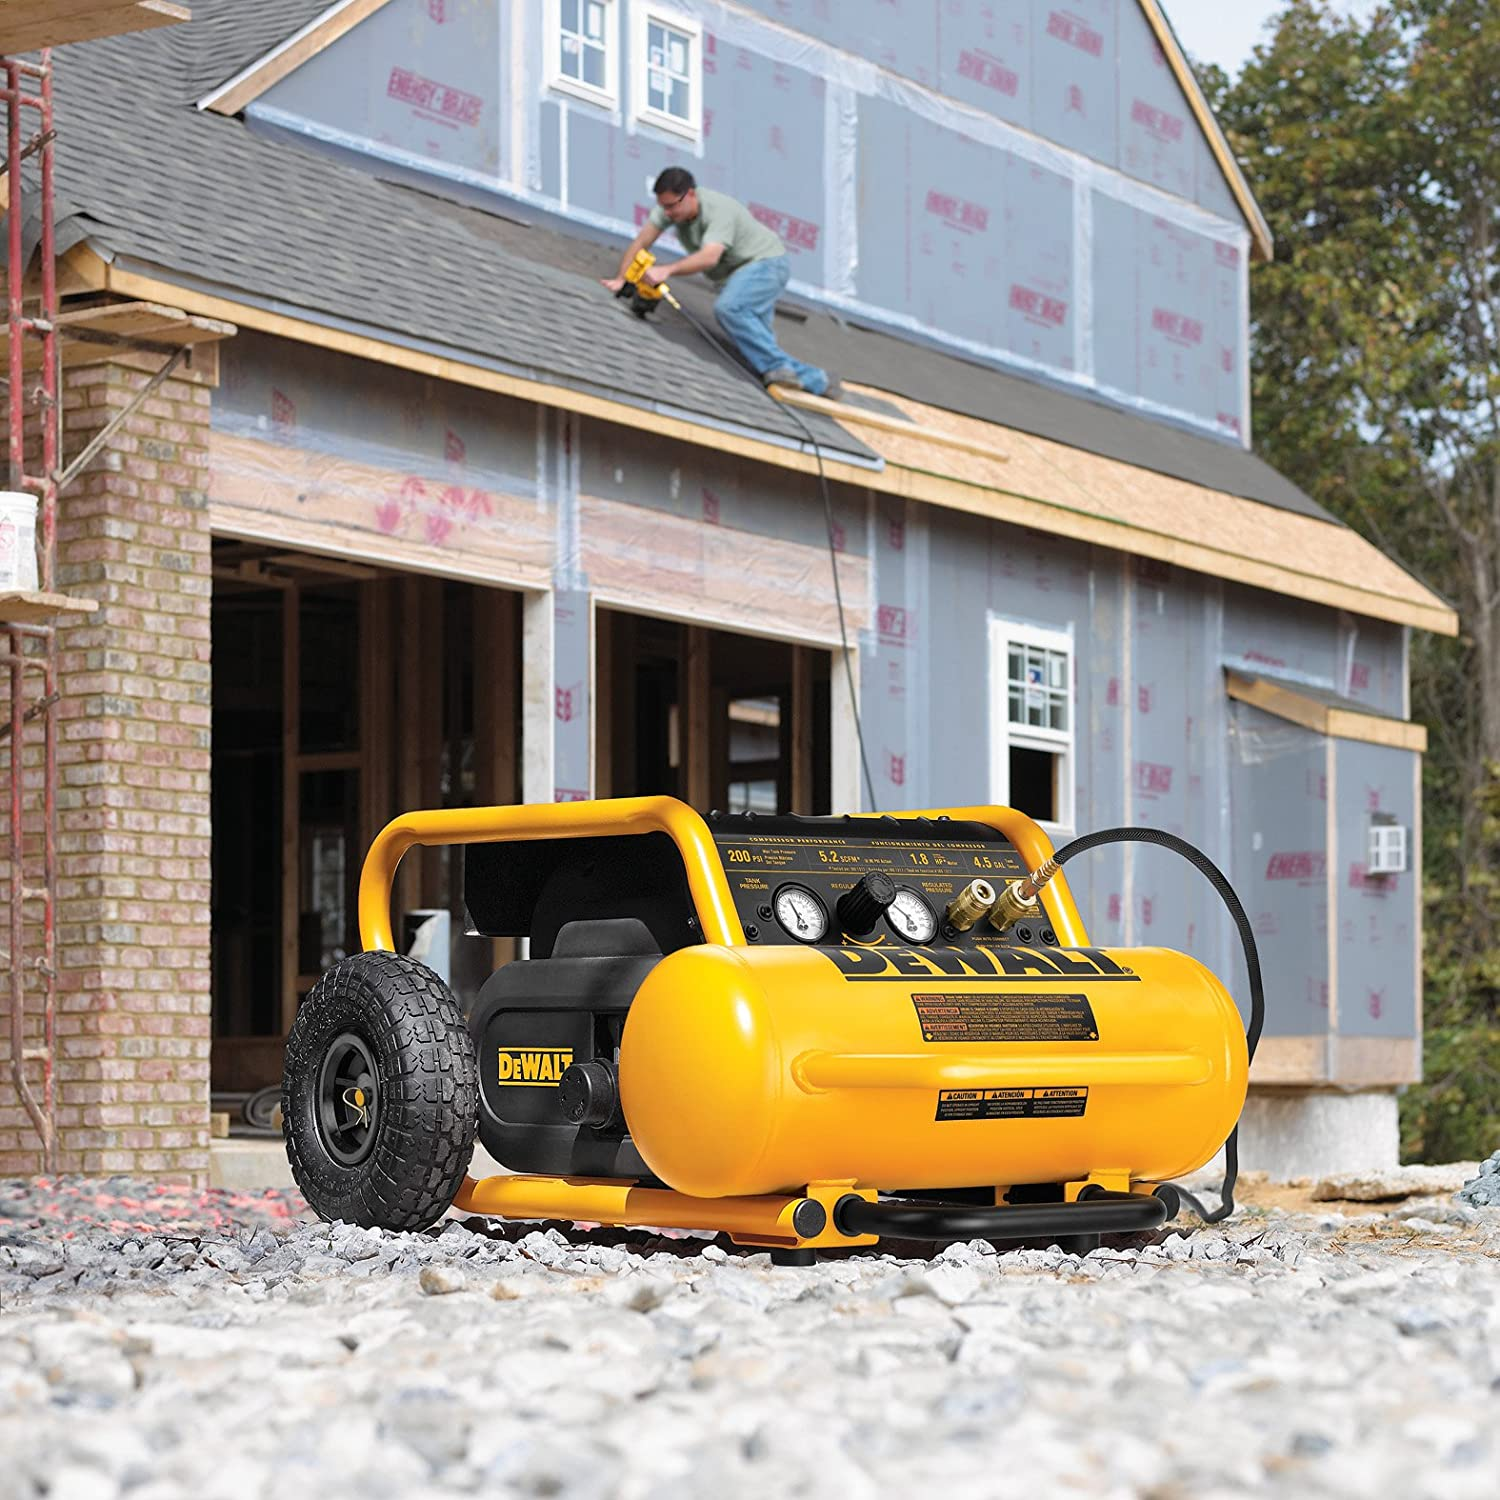 DEWALT D55146 PORTABLE AIR COmpressor